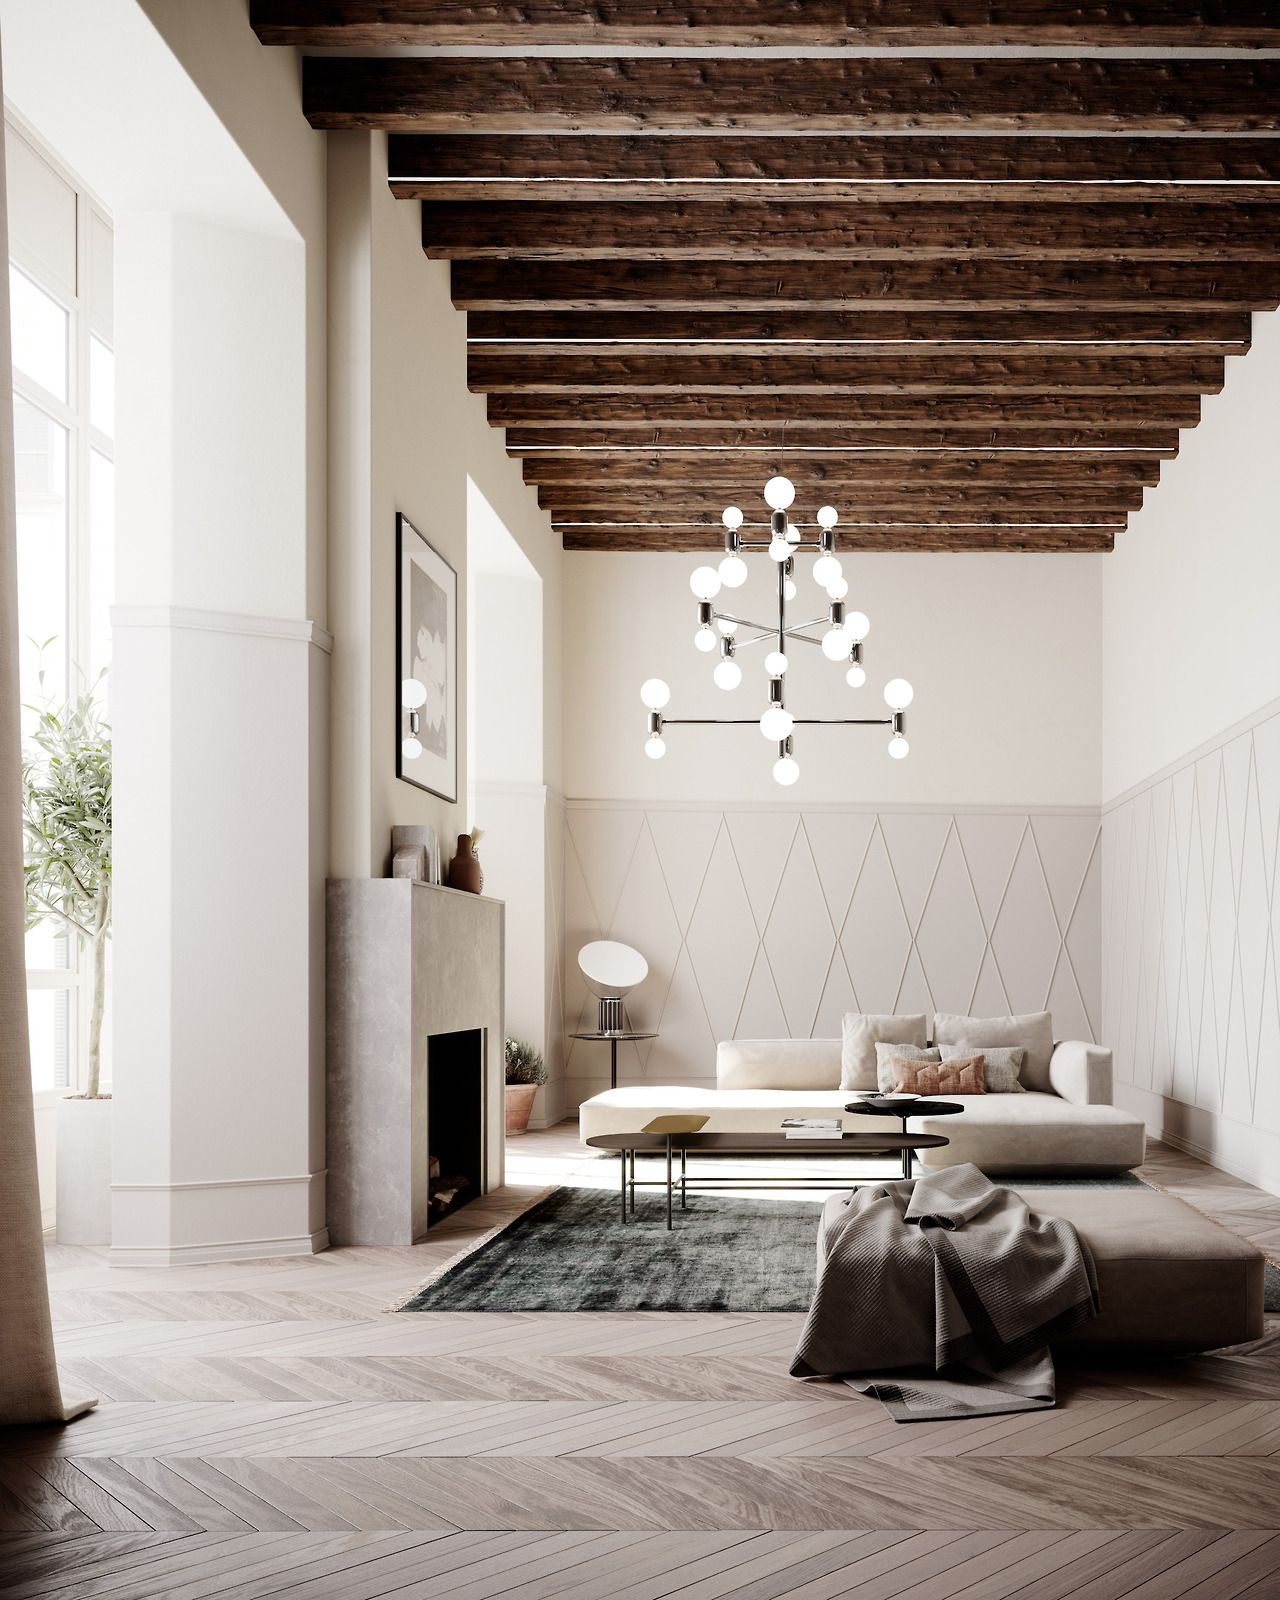 A M A Z I N G With Images Interior Interior Architecture